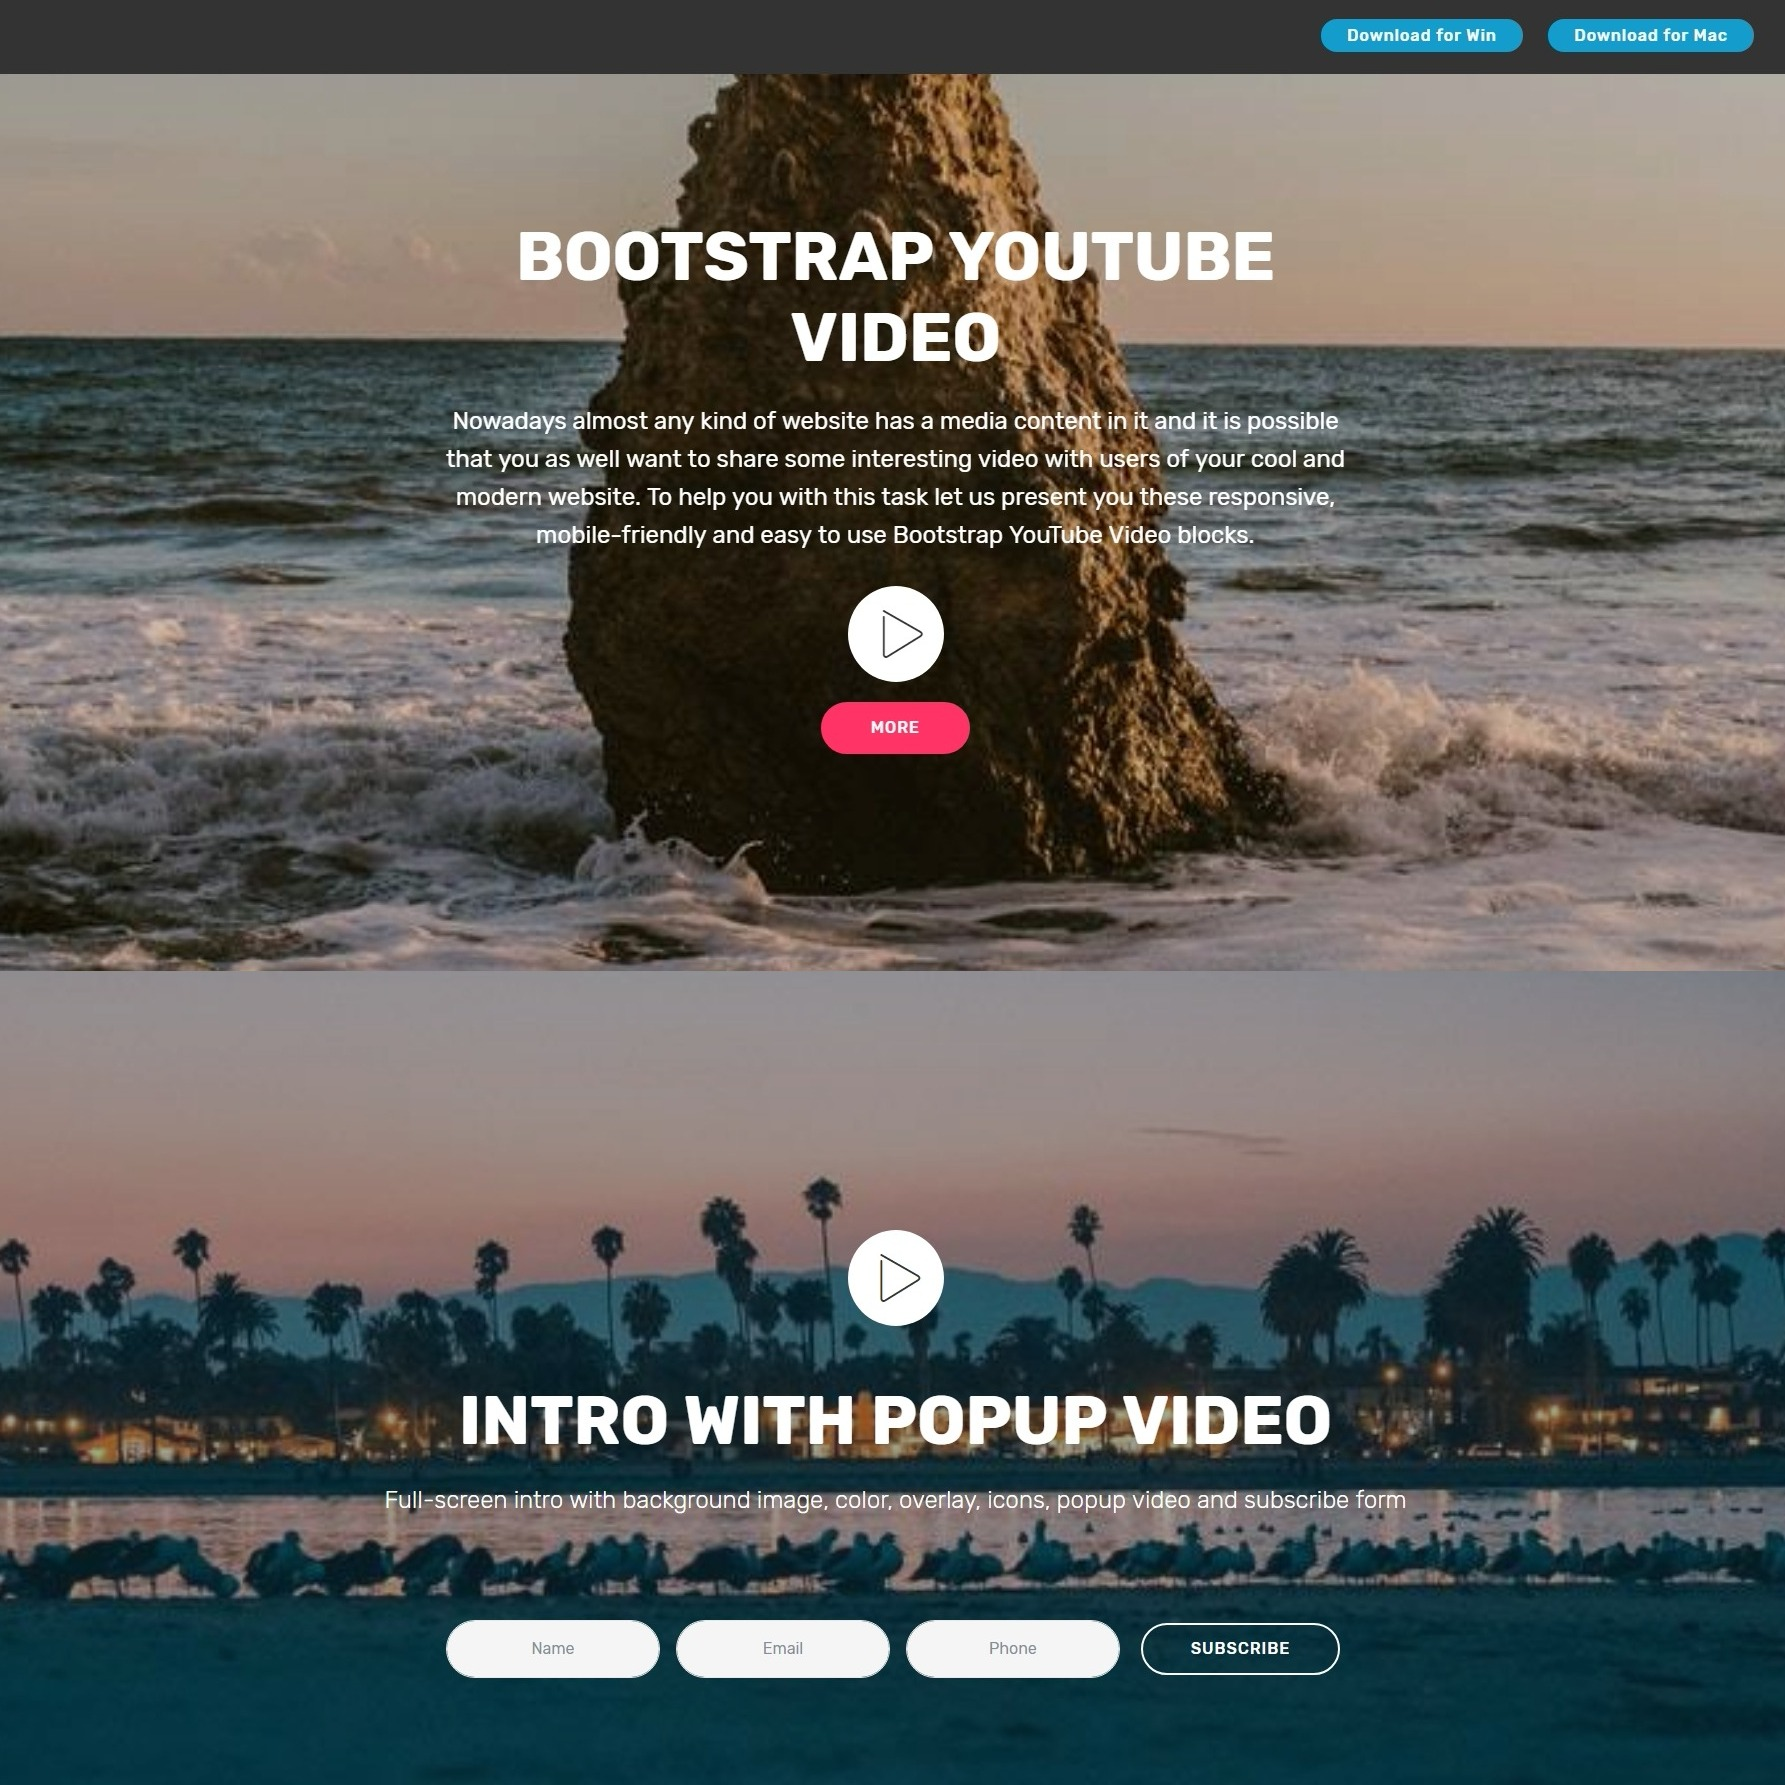 Bootstrap YouTube Video